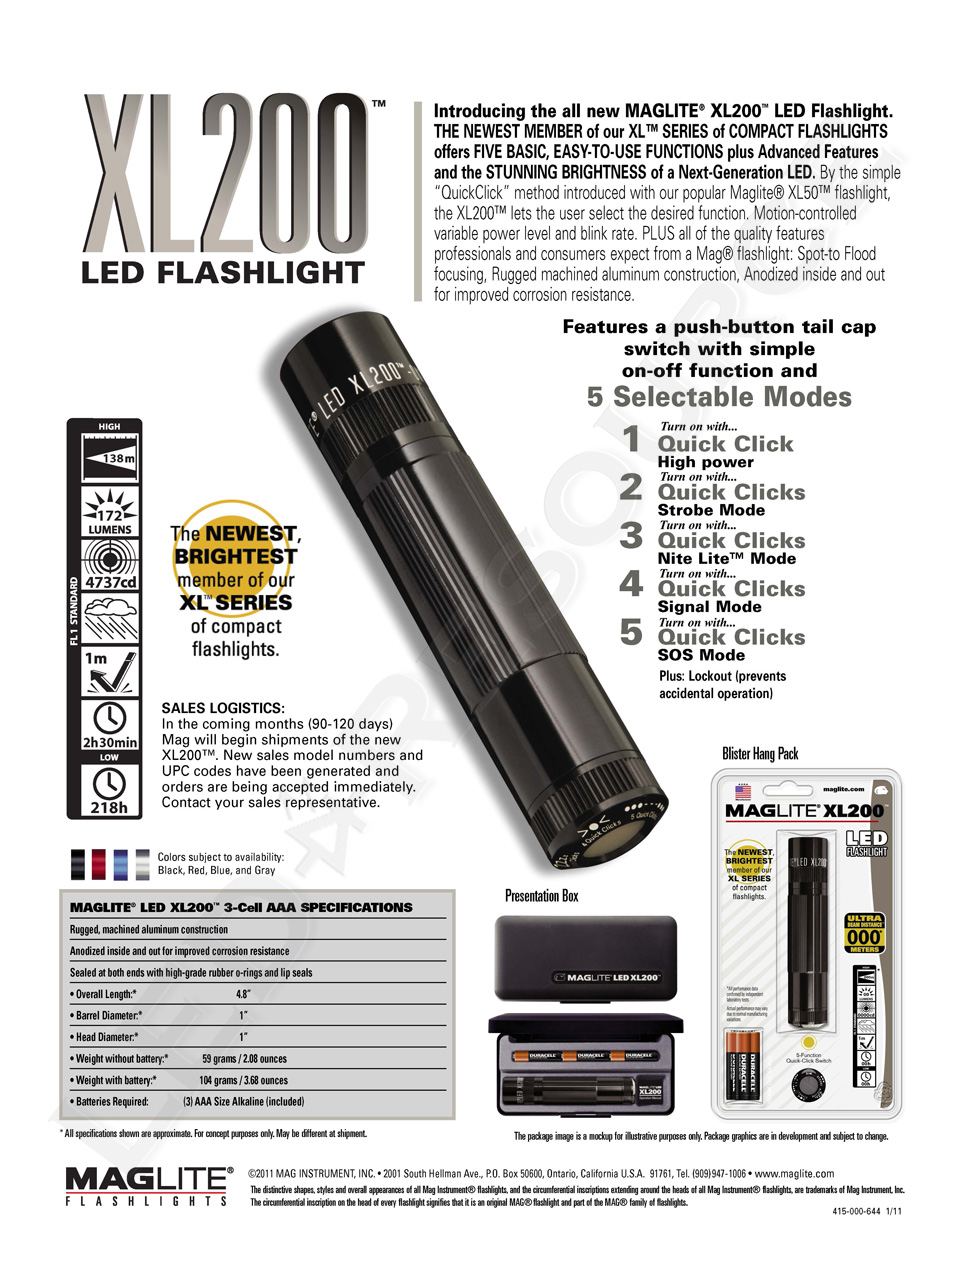 Maglite New Products For 2011 Led Resource